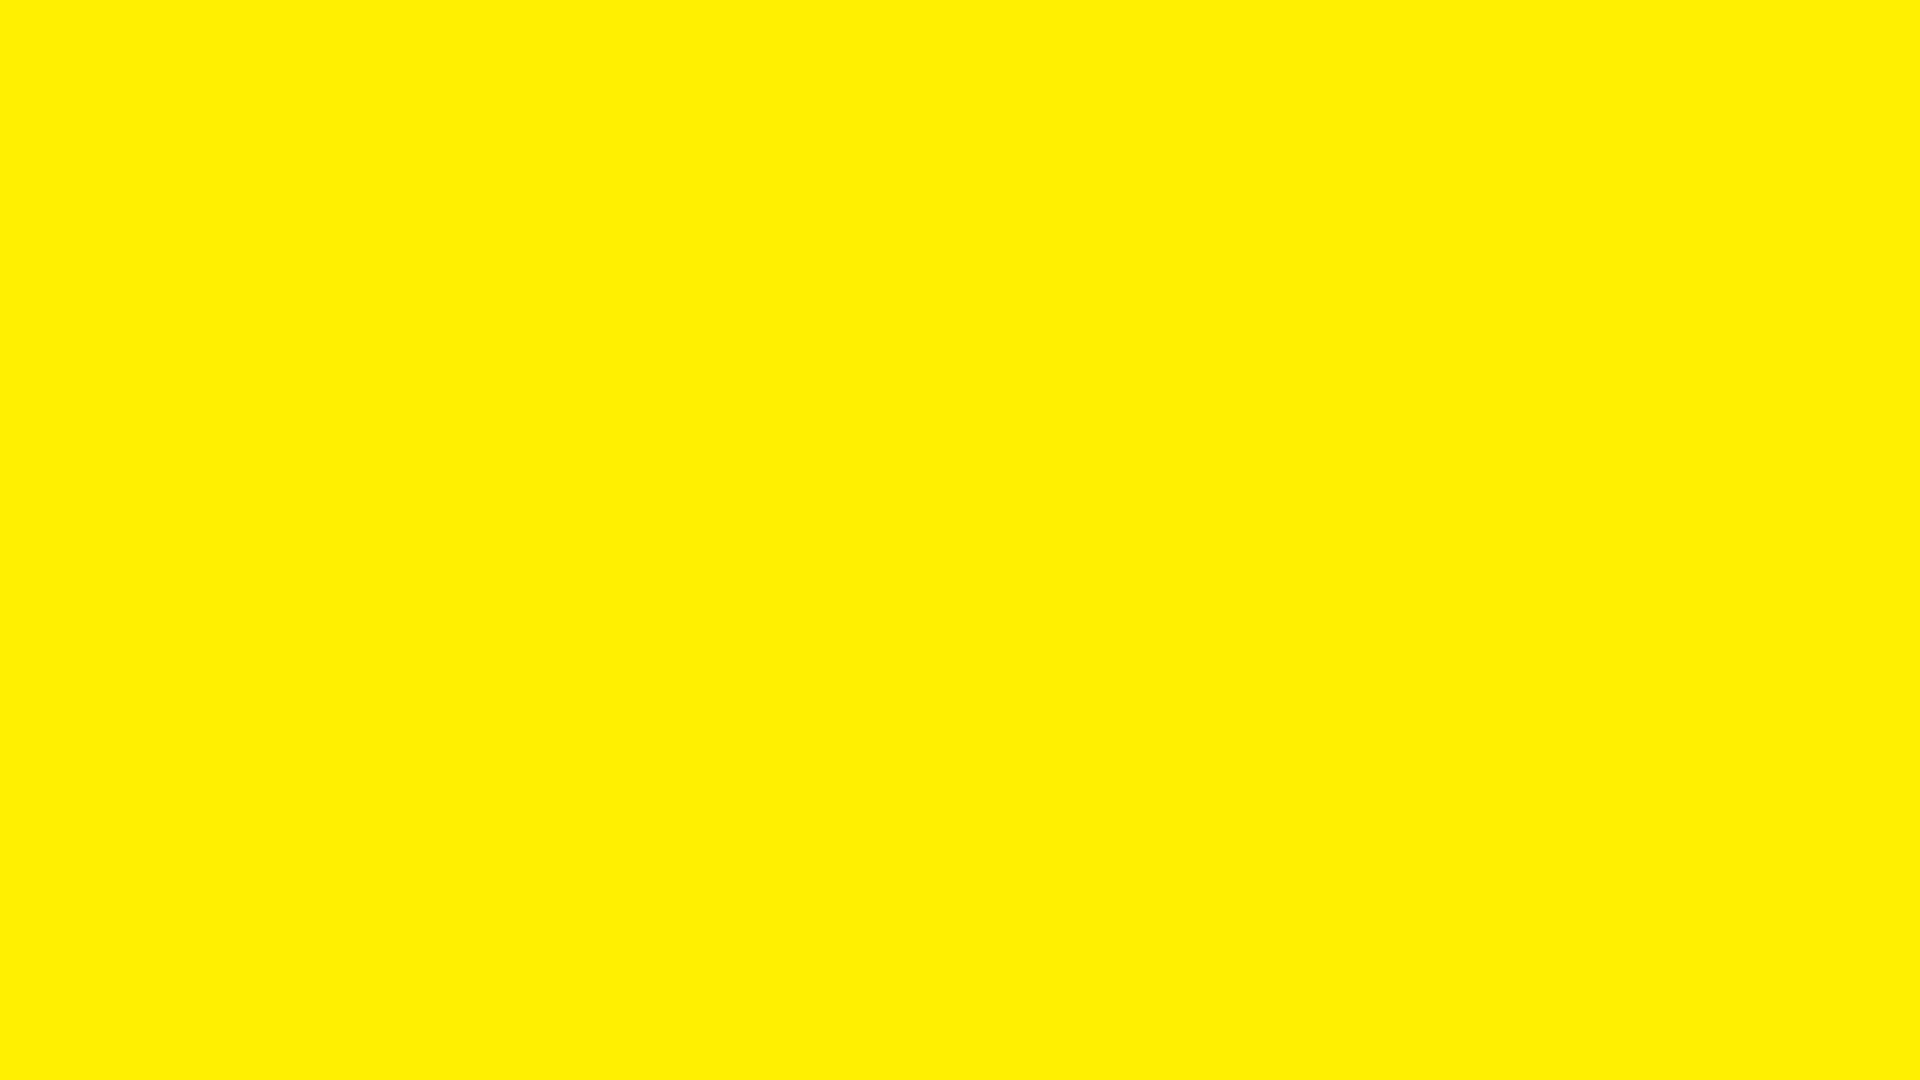 1920x1080 Canary Yellow Solid Color Background